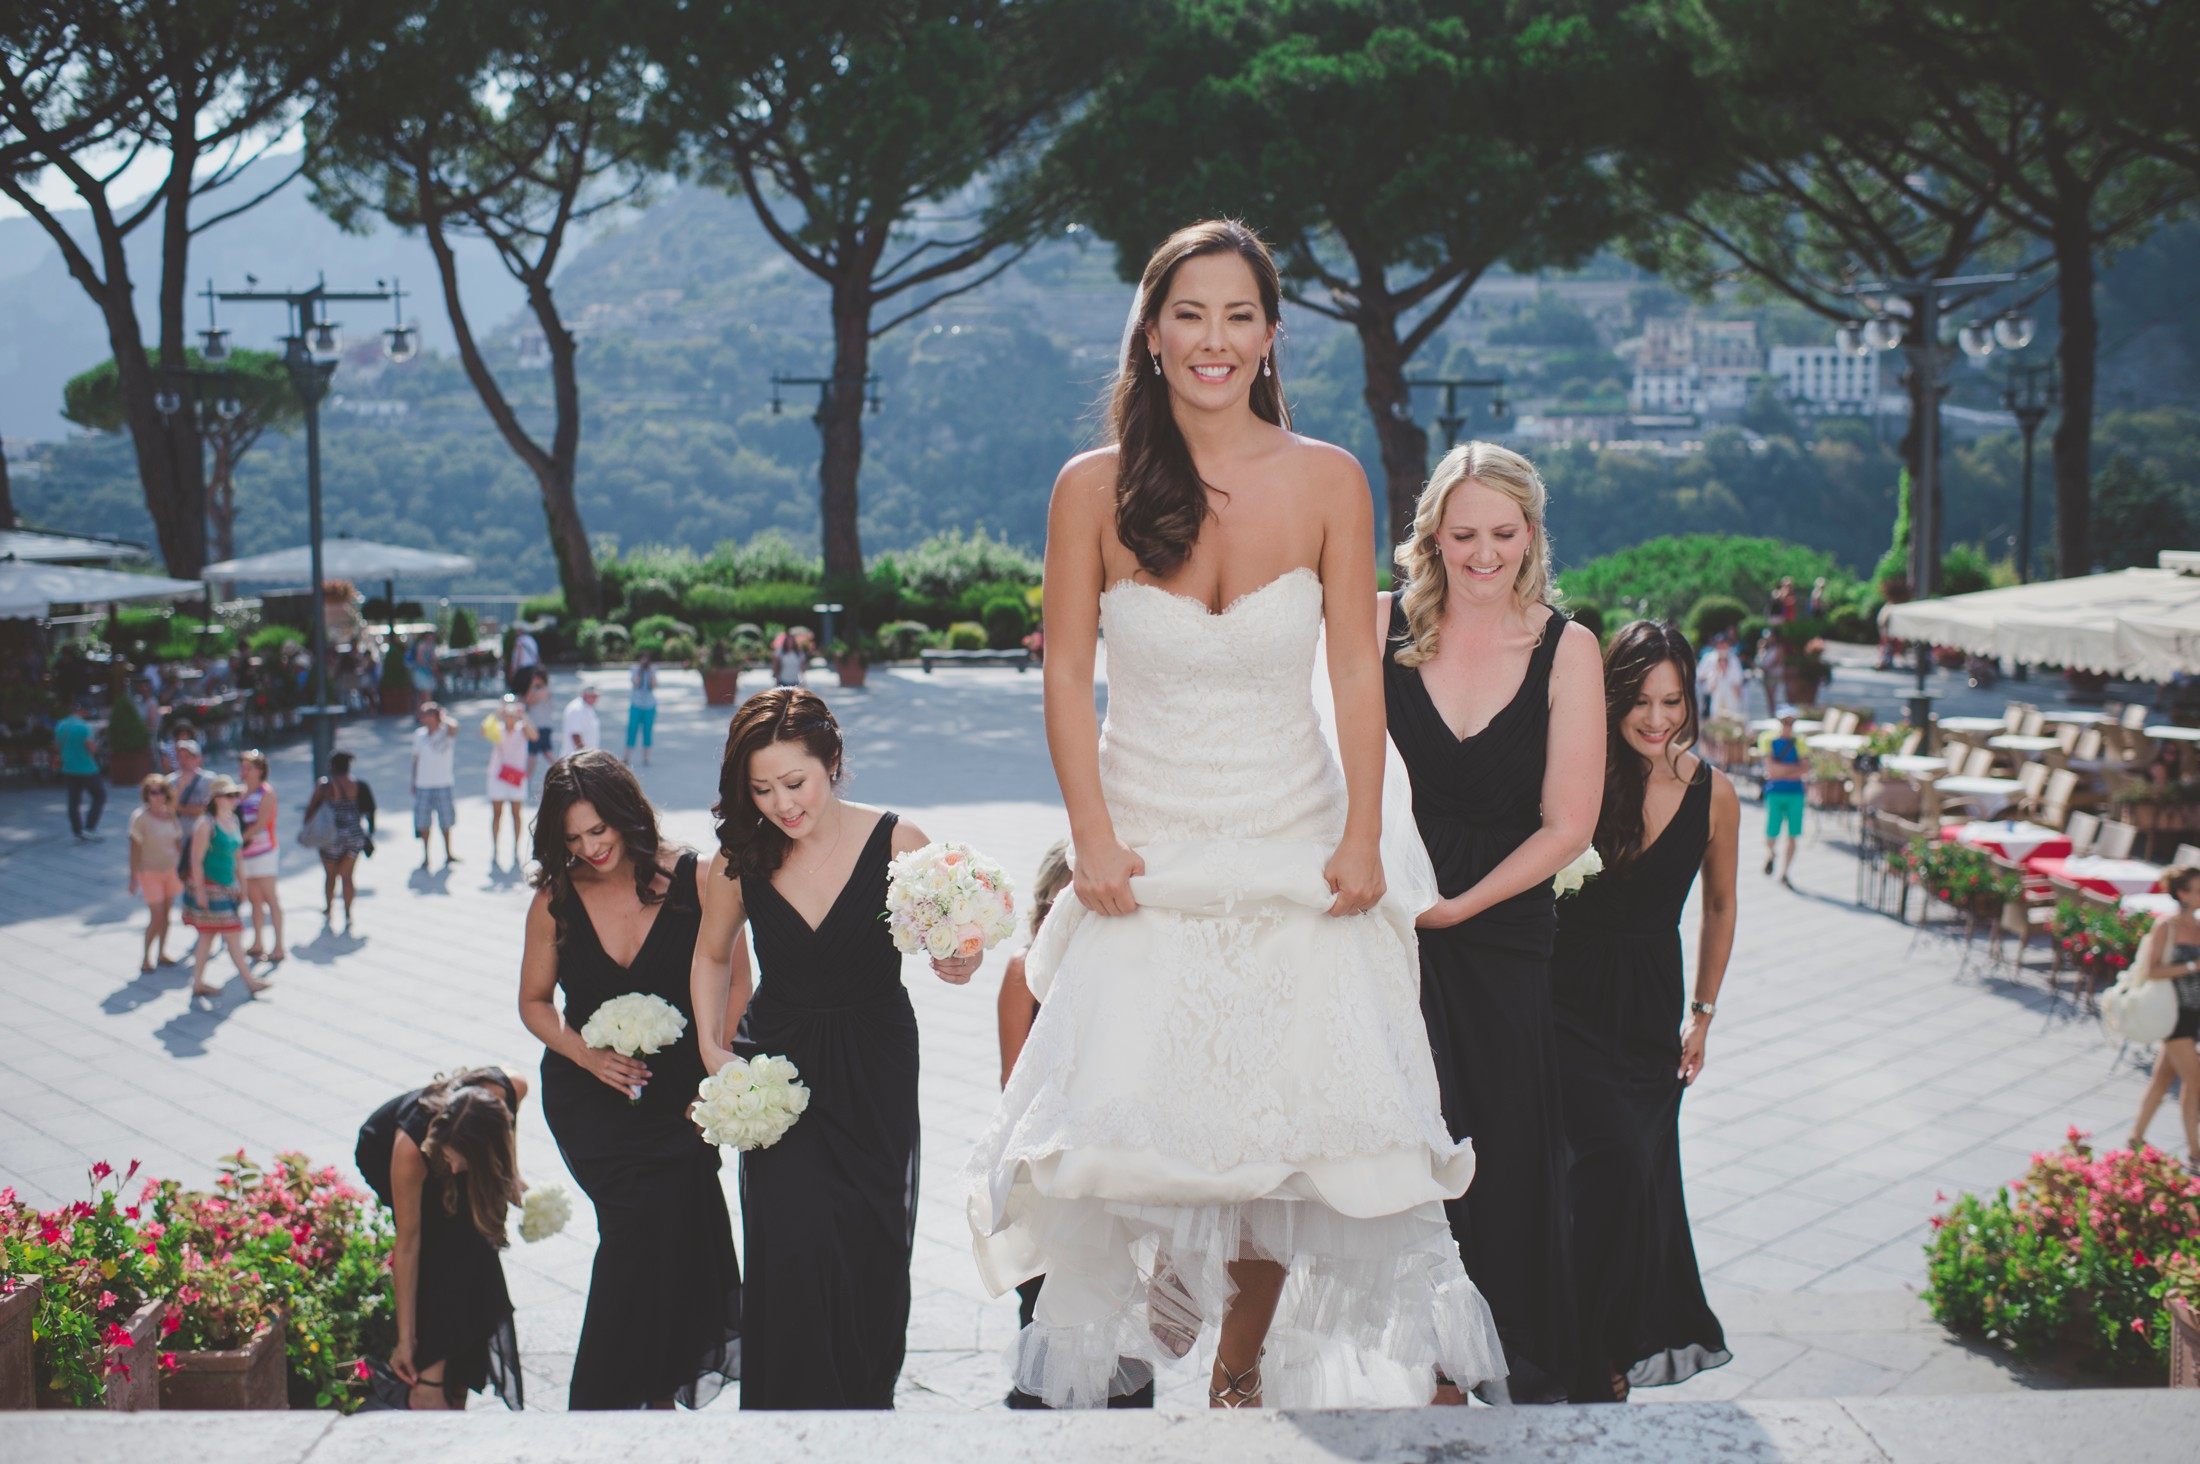 wedding in ravello the bride with her bridesmaids walking to the church